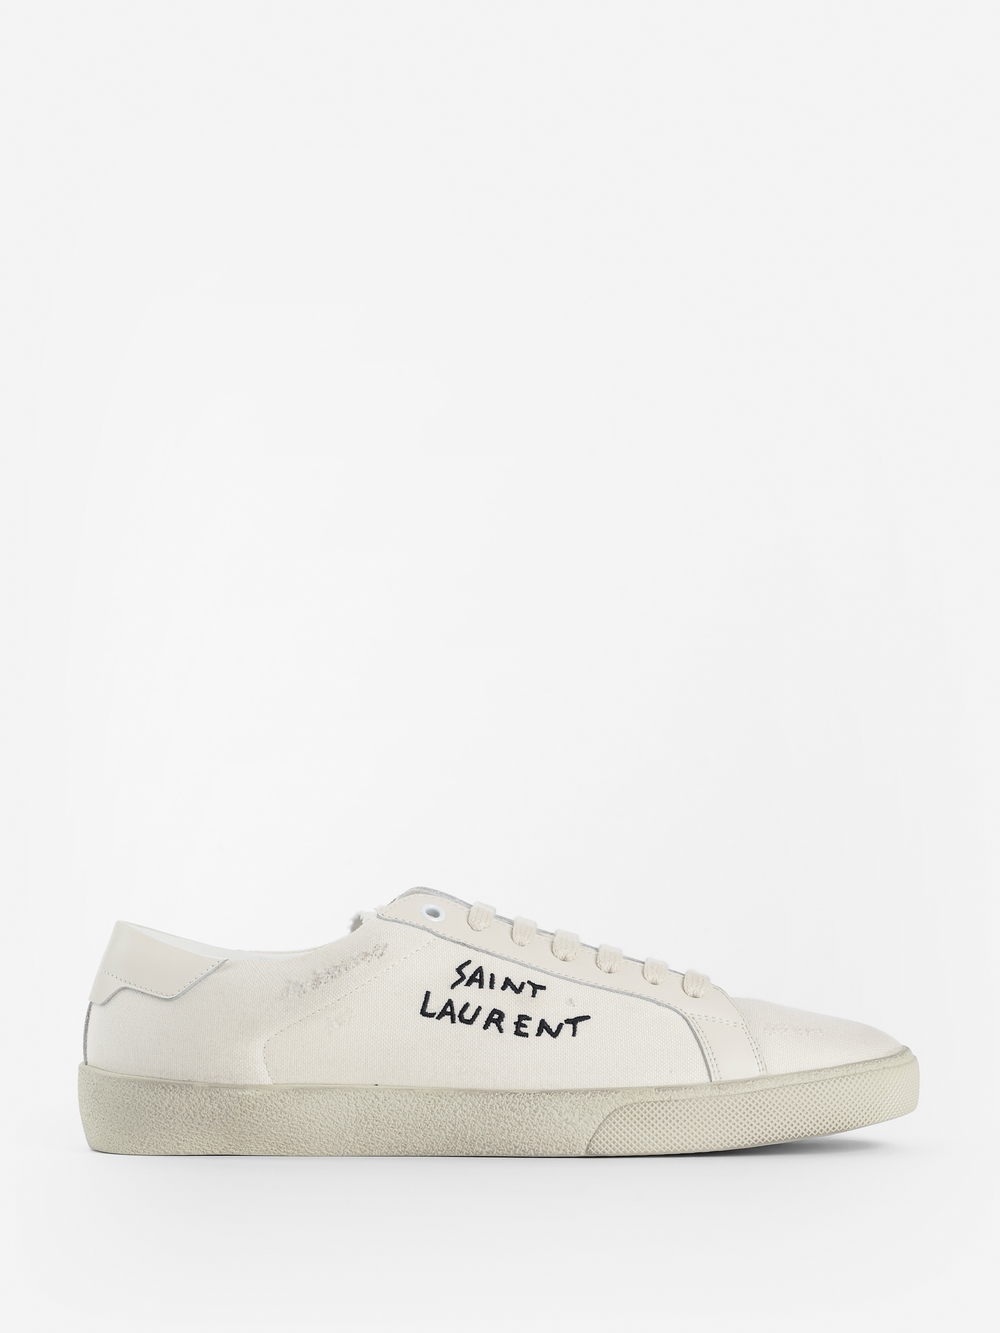 Saint Laurent Sneakers 471827GUP10 9113A18